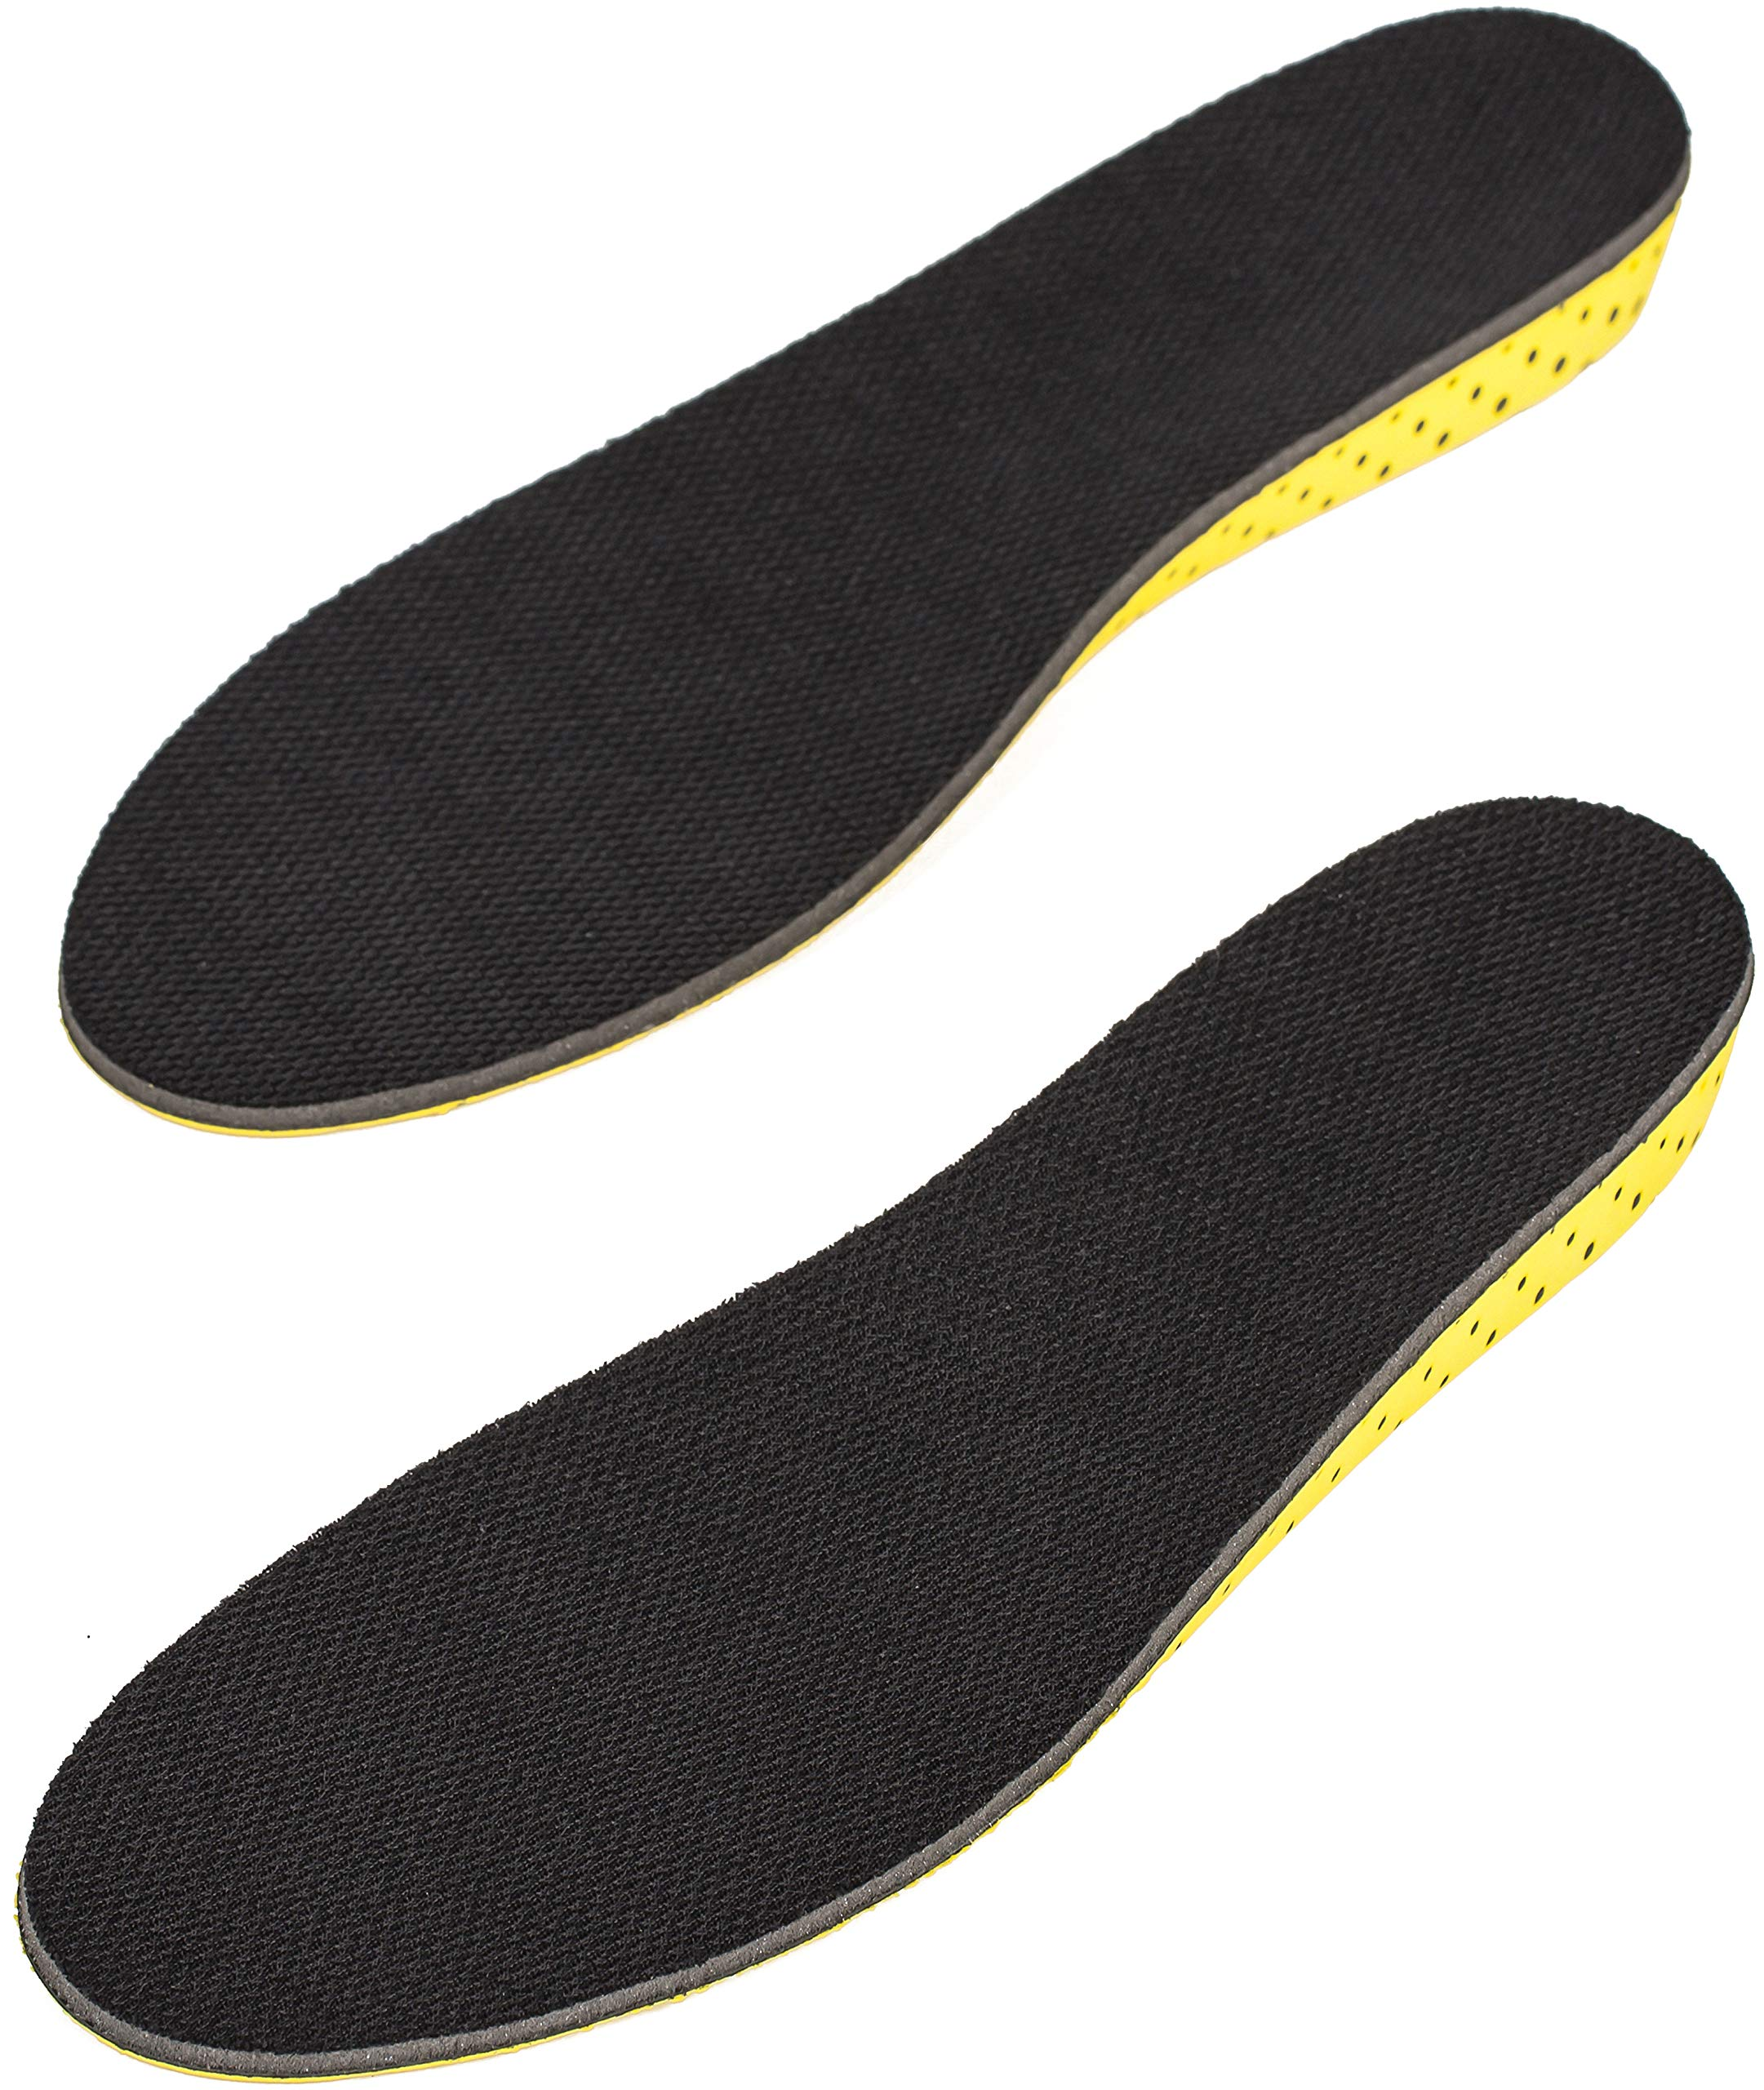 Height Increase Insole Conversion Invisible